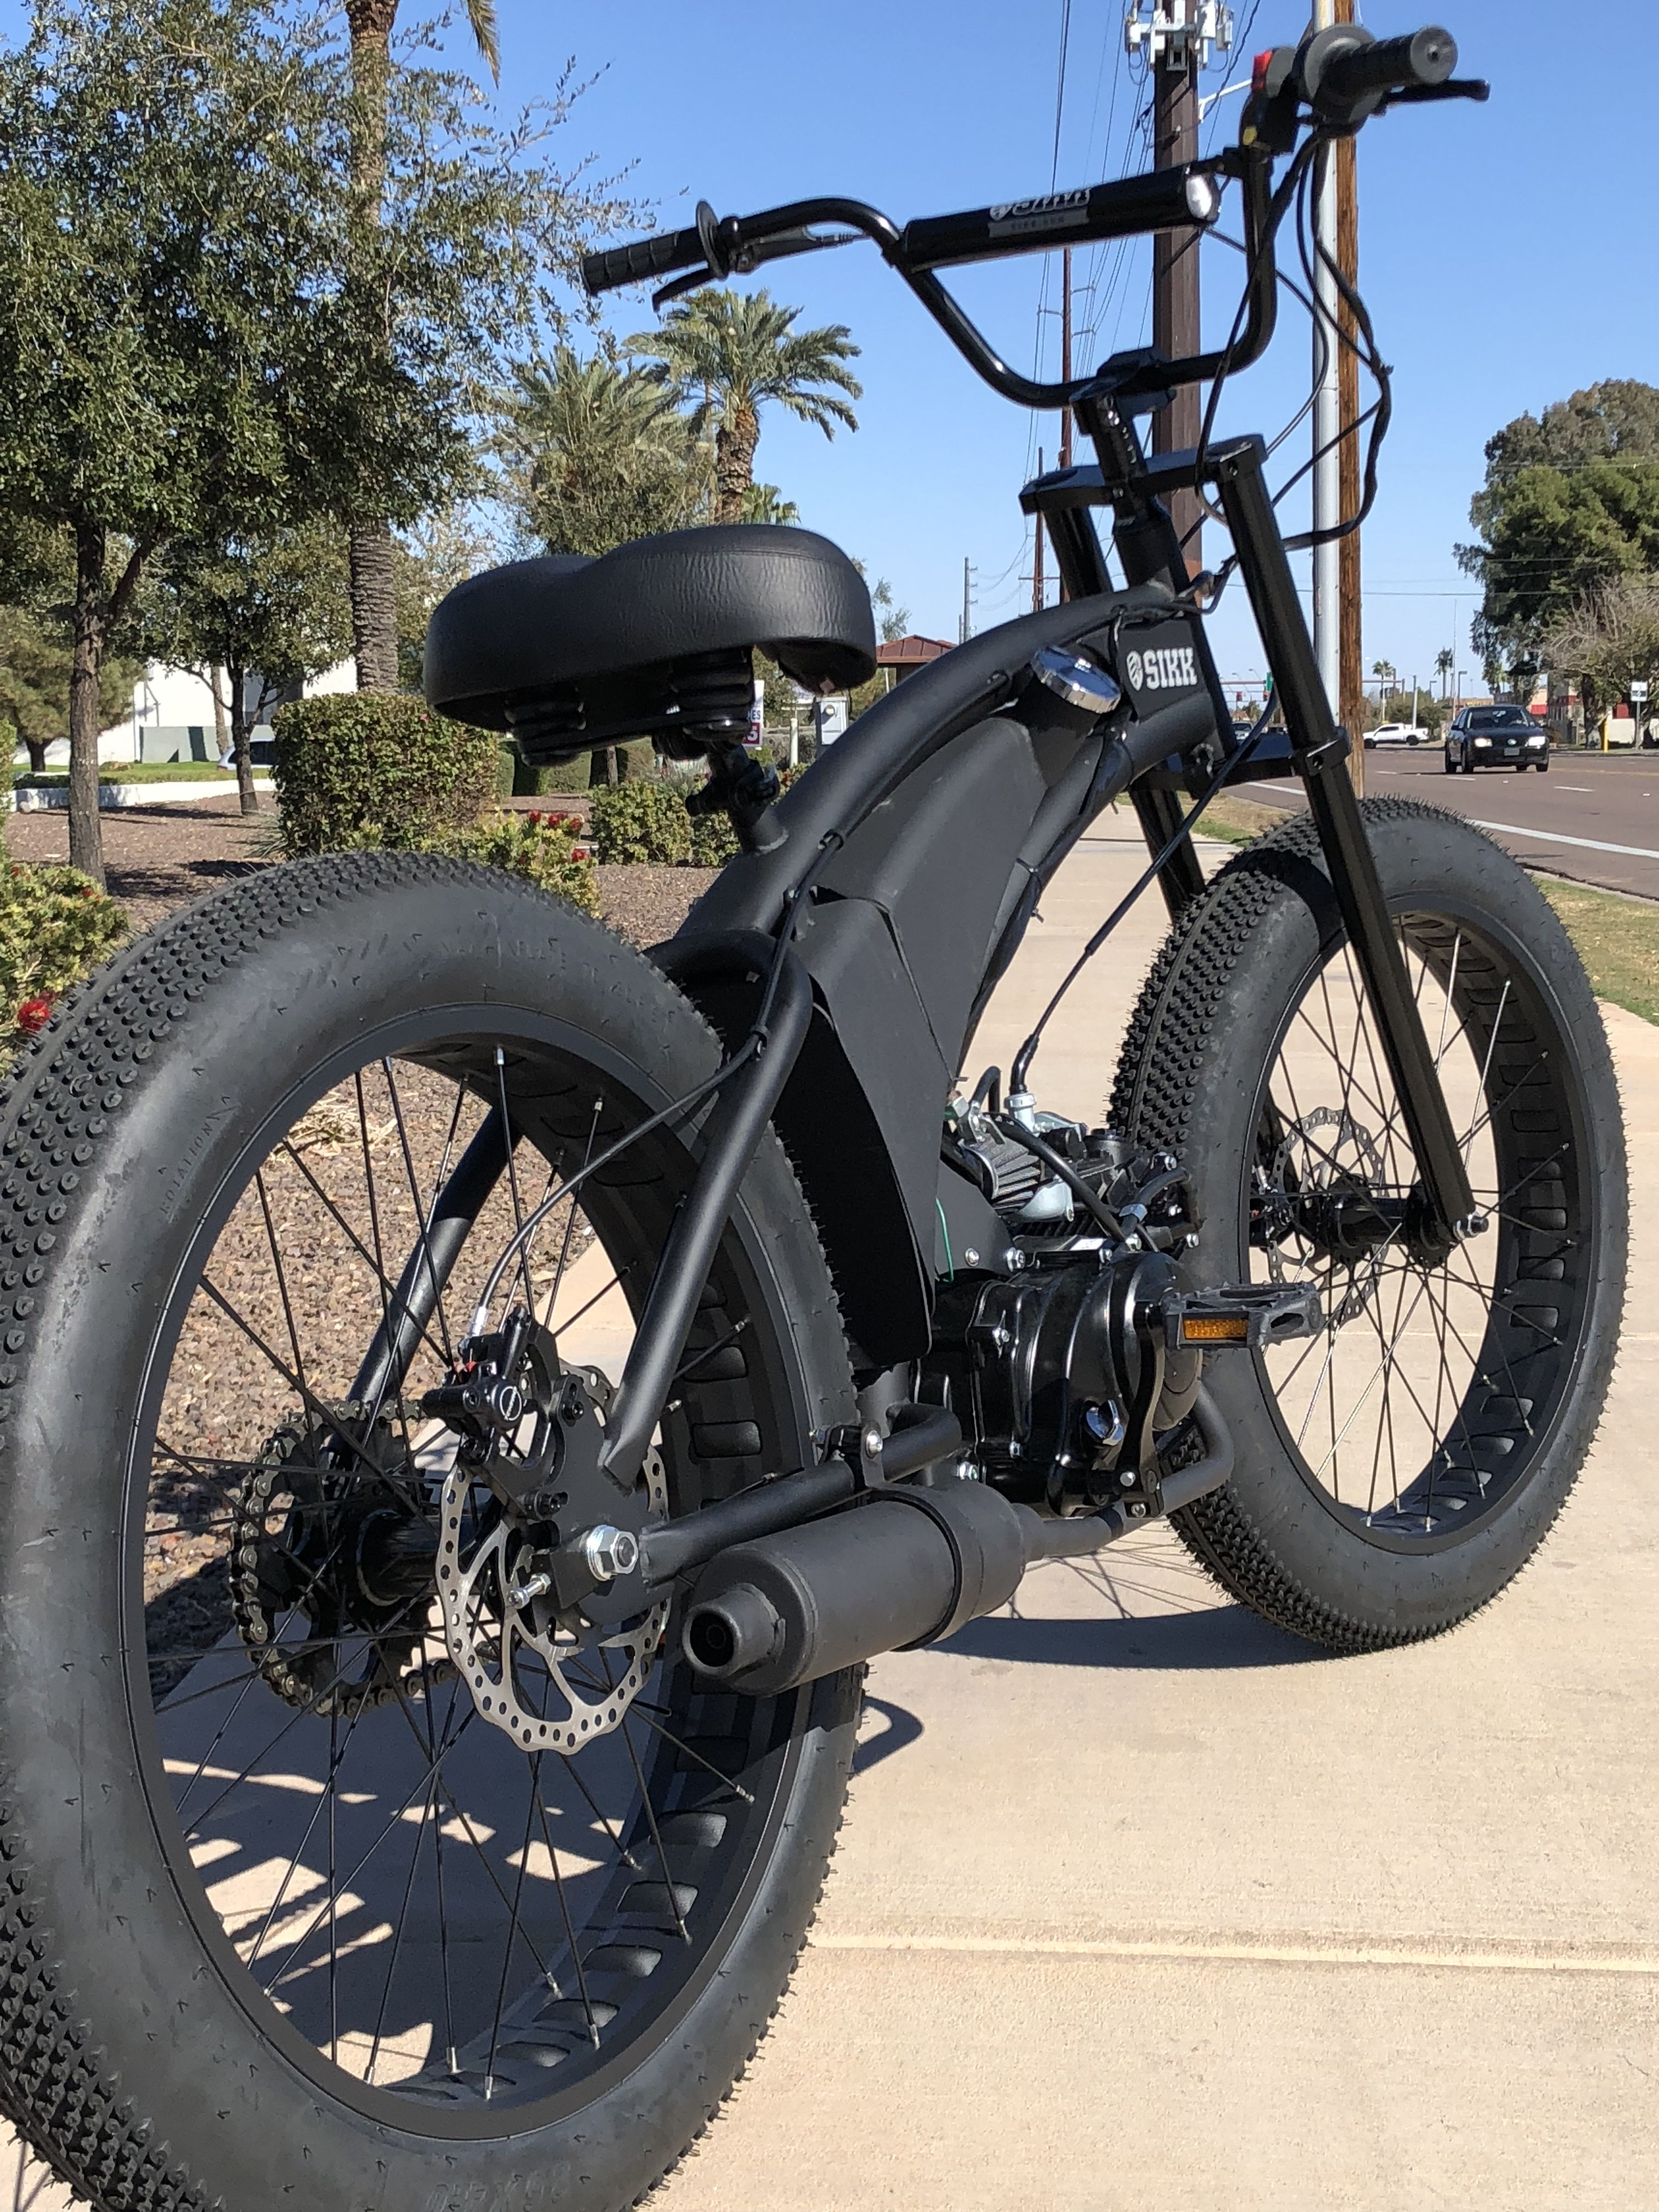 e7c7bf46c33 Introducing the awesome 2018 SIKKPED MOTORBIKE. 49cc four-stroke engine,  Electric start Pedals make it legal in most states as a Moped $1199  Available end ...